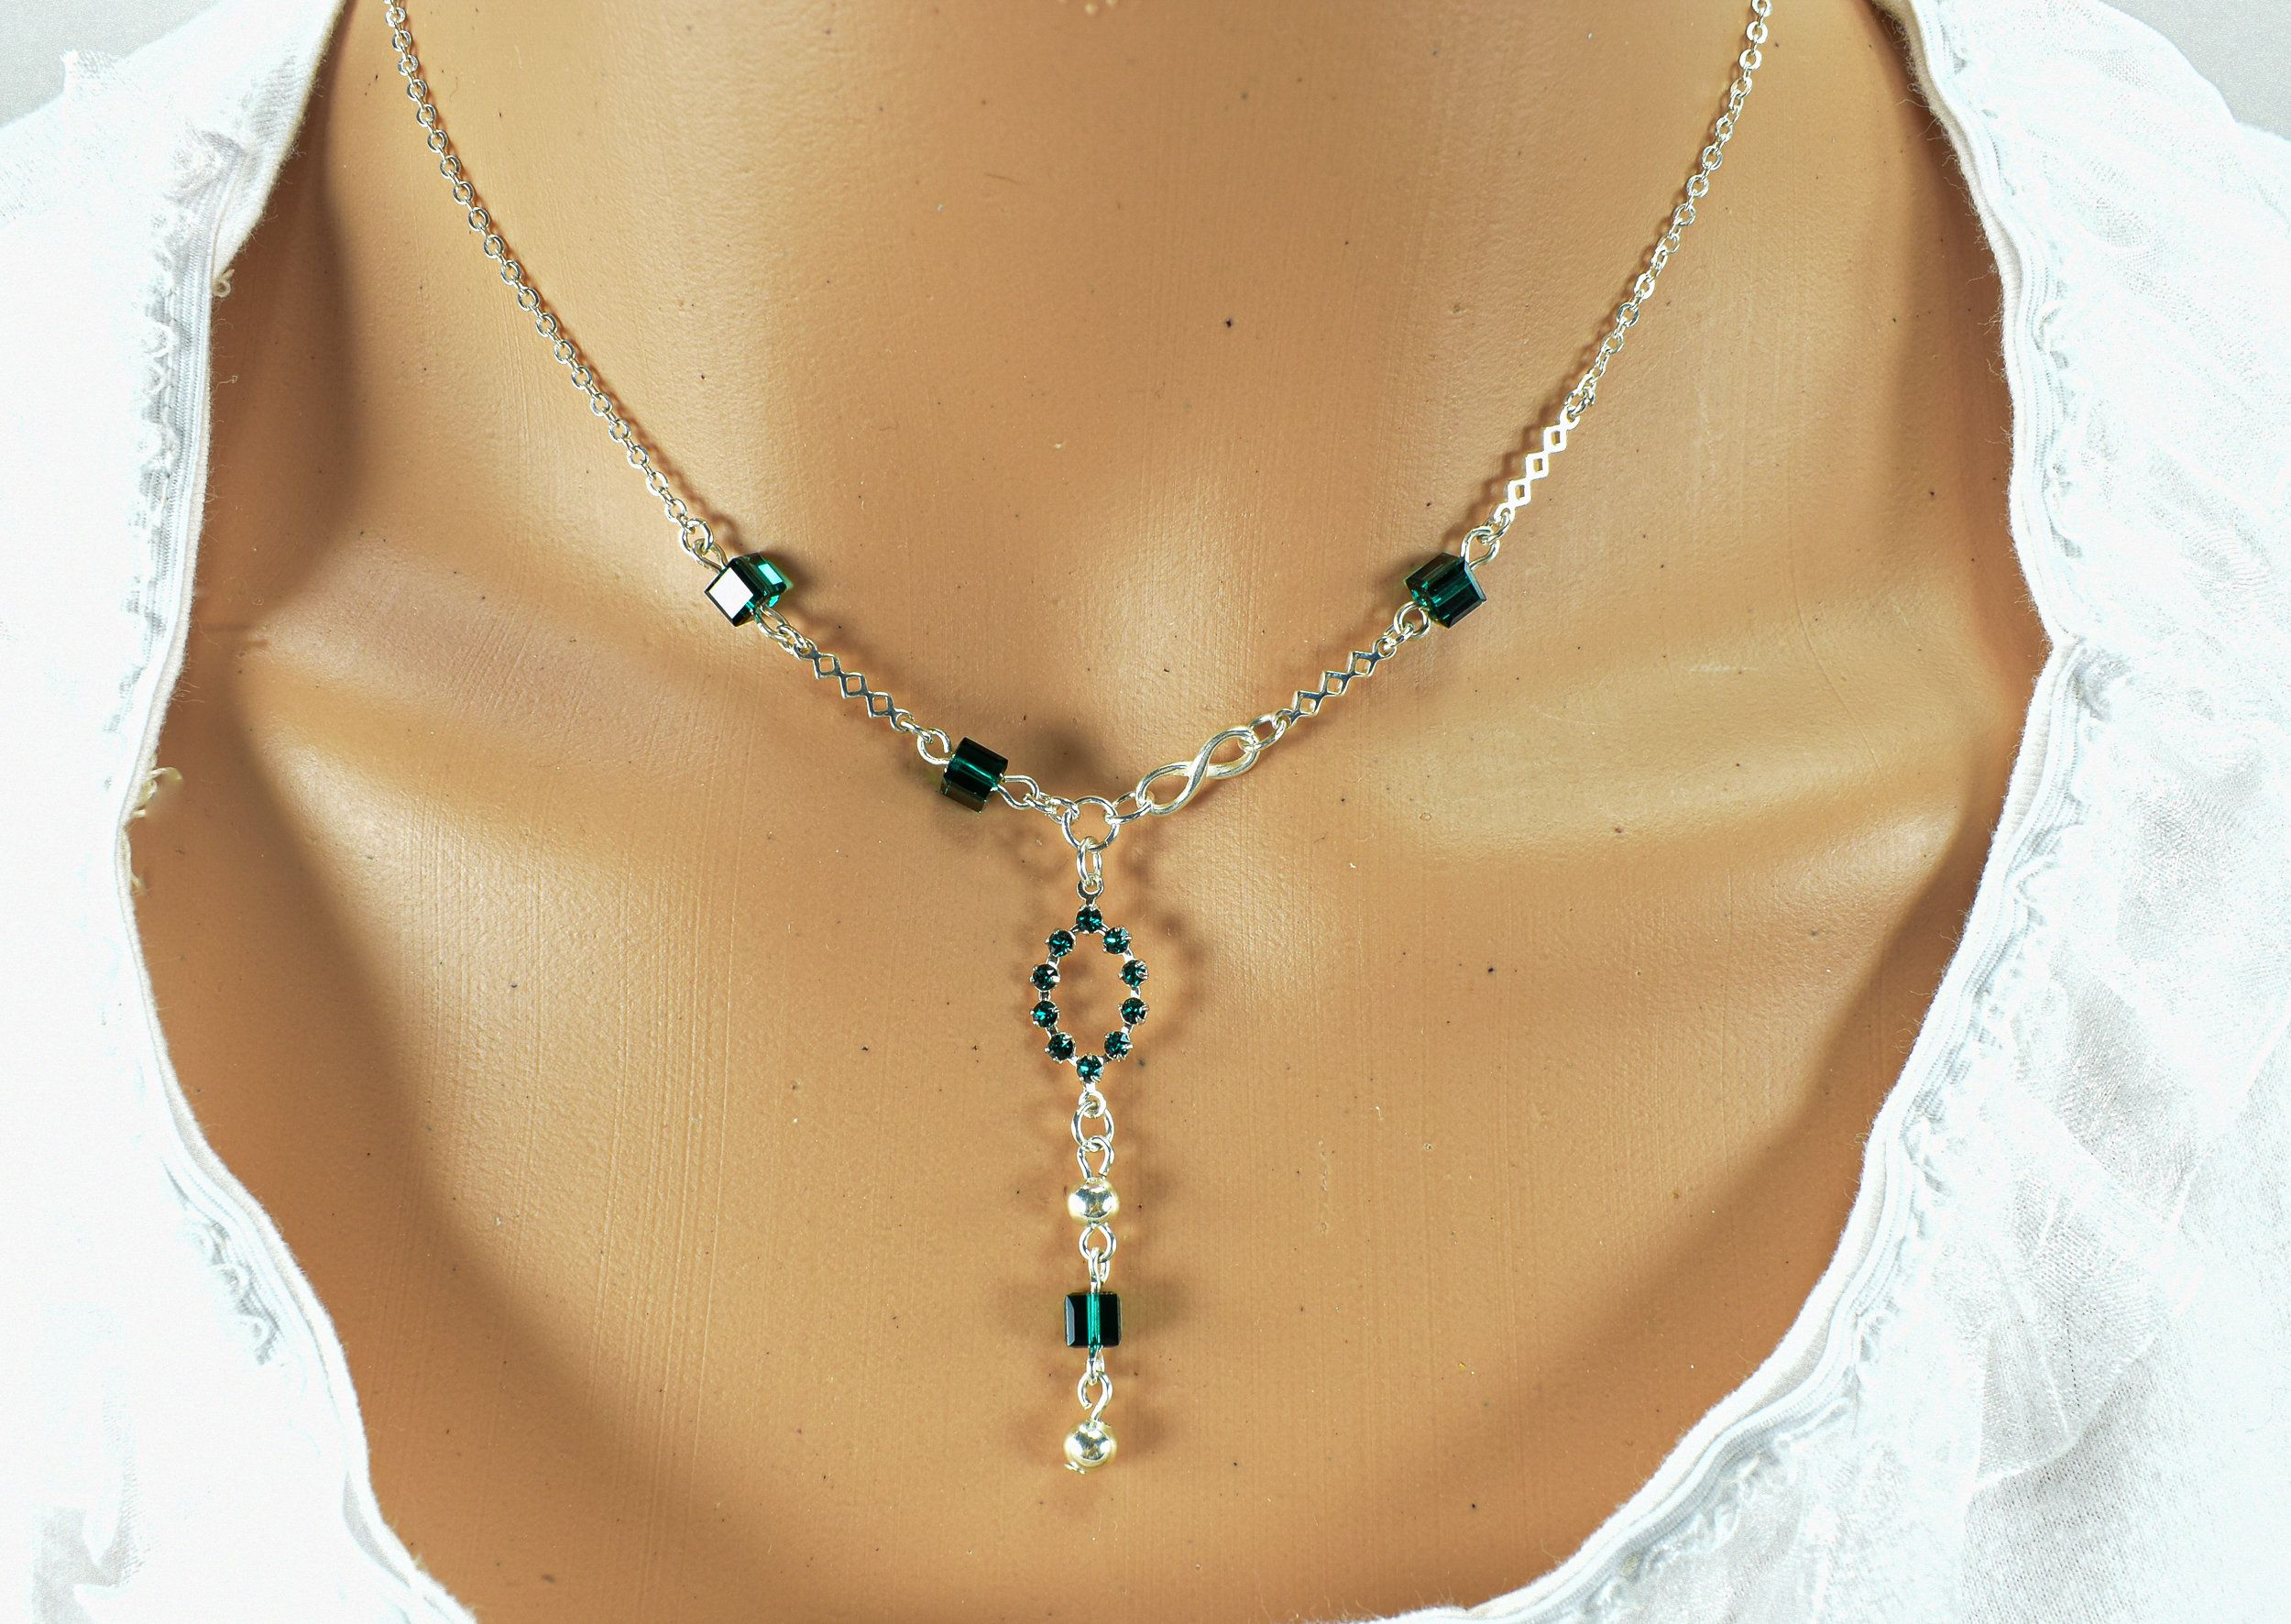 Green Swarvoski Crystal and Silver Necklace 15